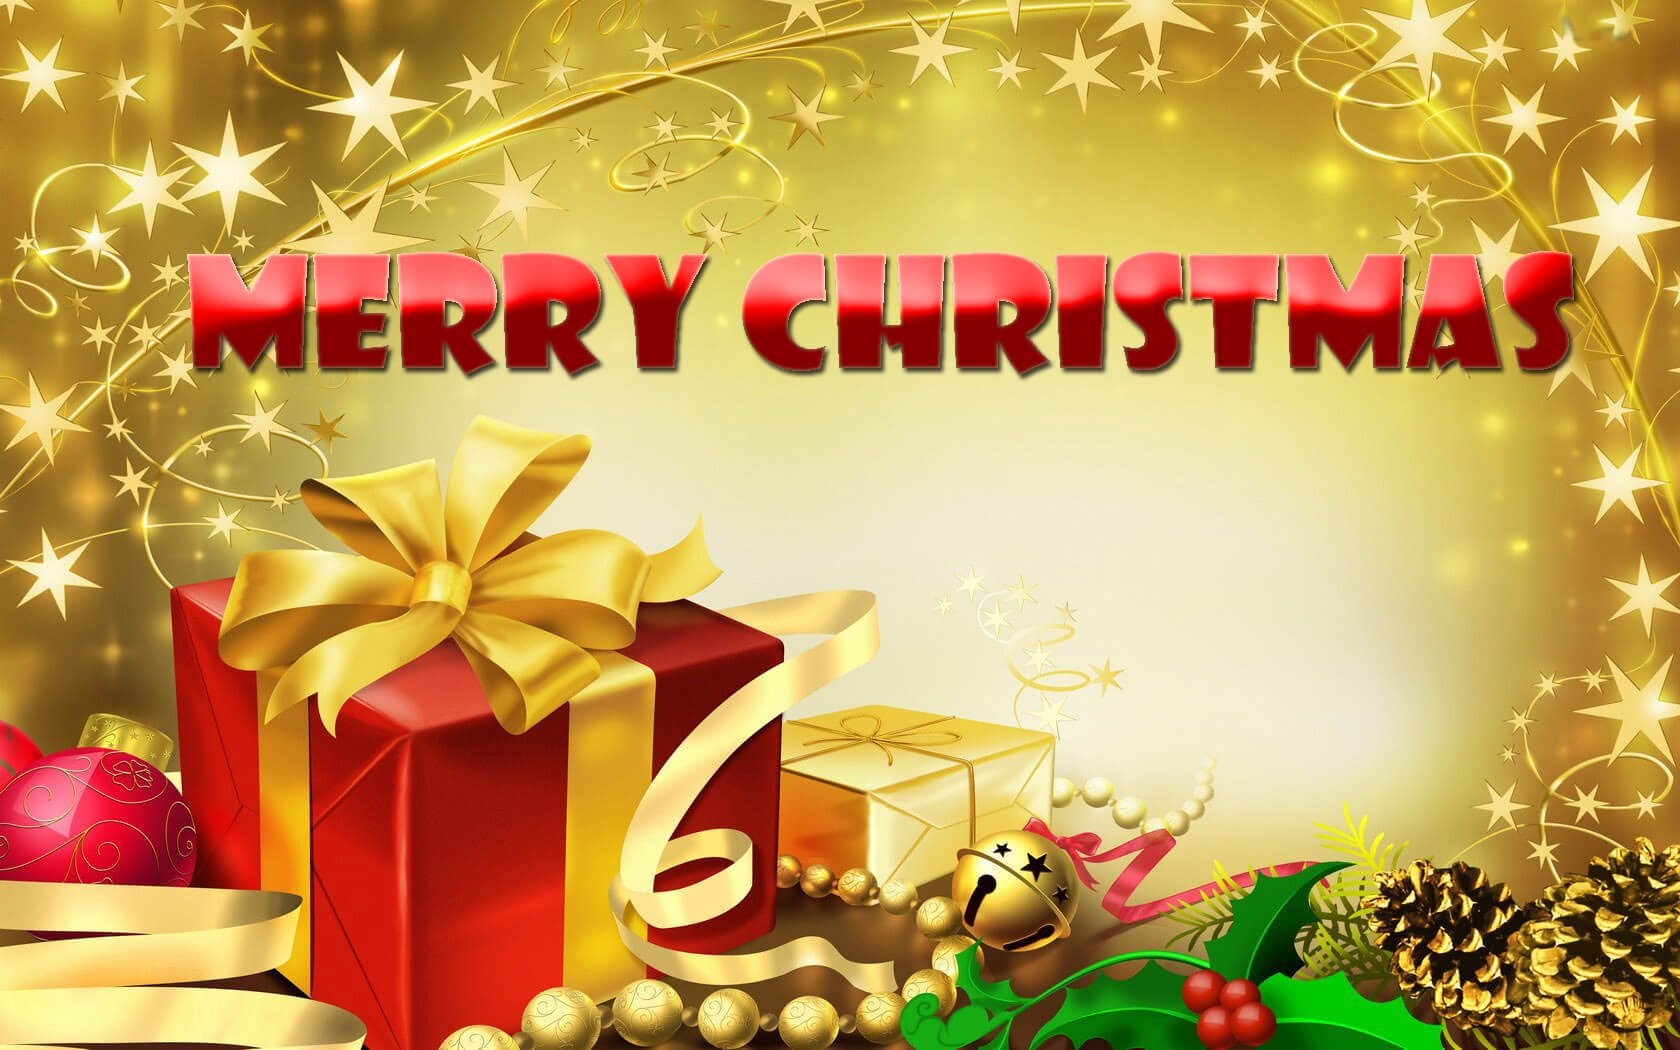 Christmas SMS Wishes